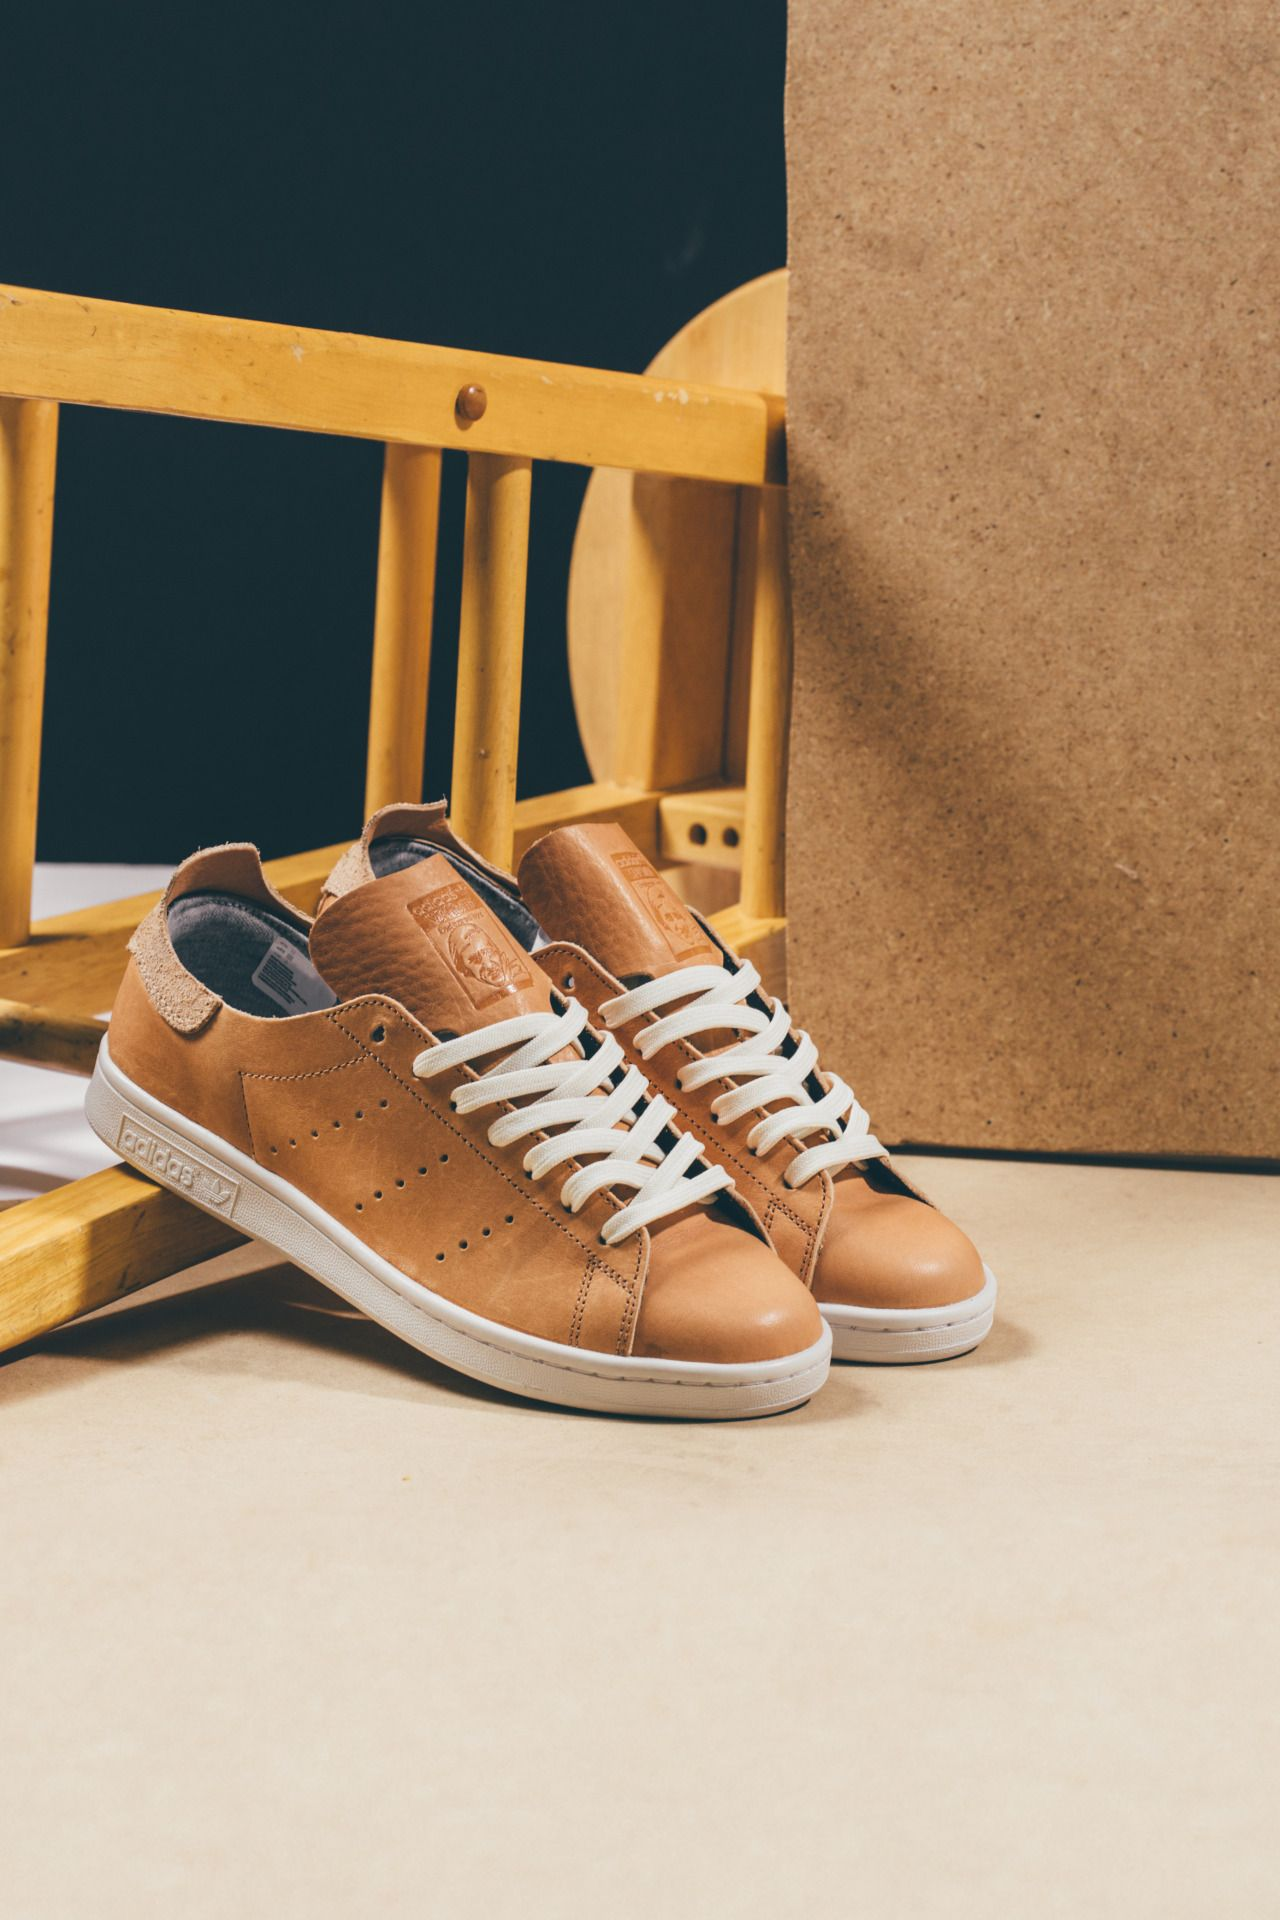 on sale ba04b 288ae Adidas Originals Stan Smith Horween Leatherwww.featuresneakerboutique.comPhotographer  FreakinFrancis